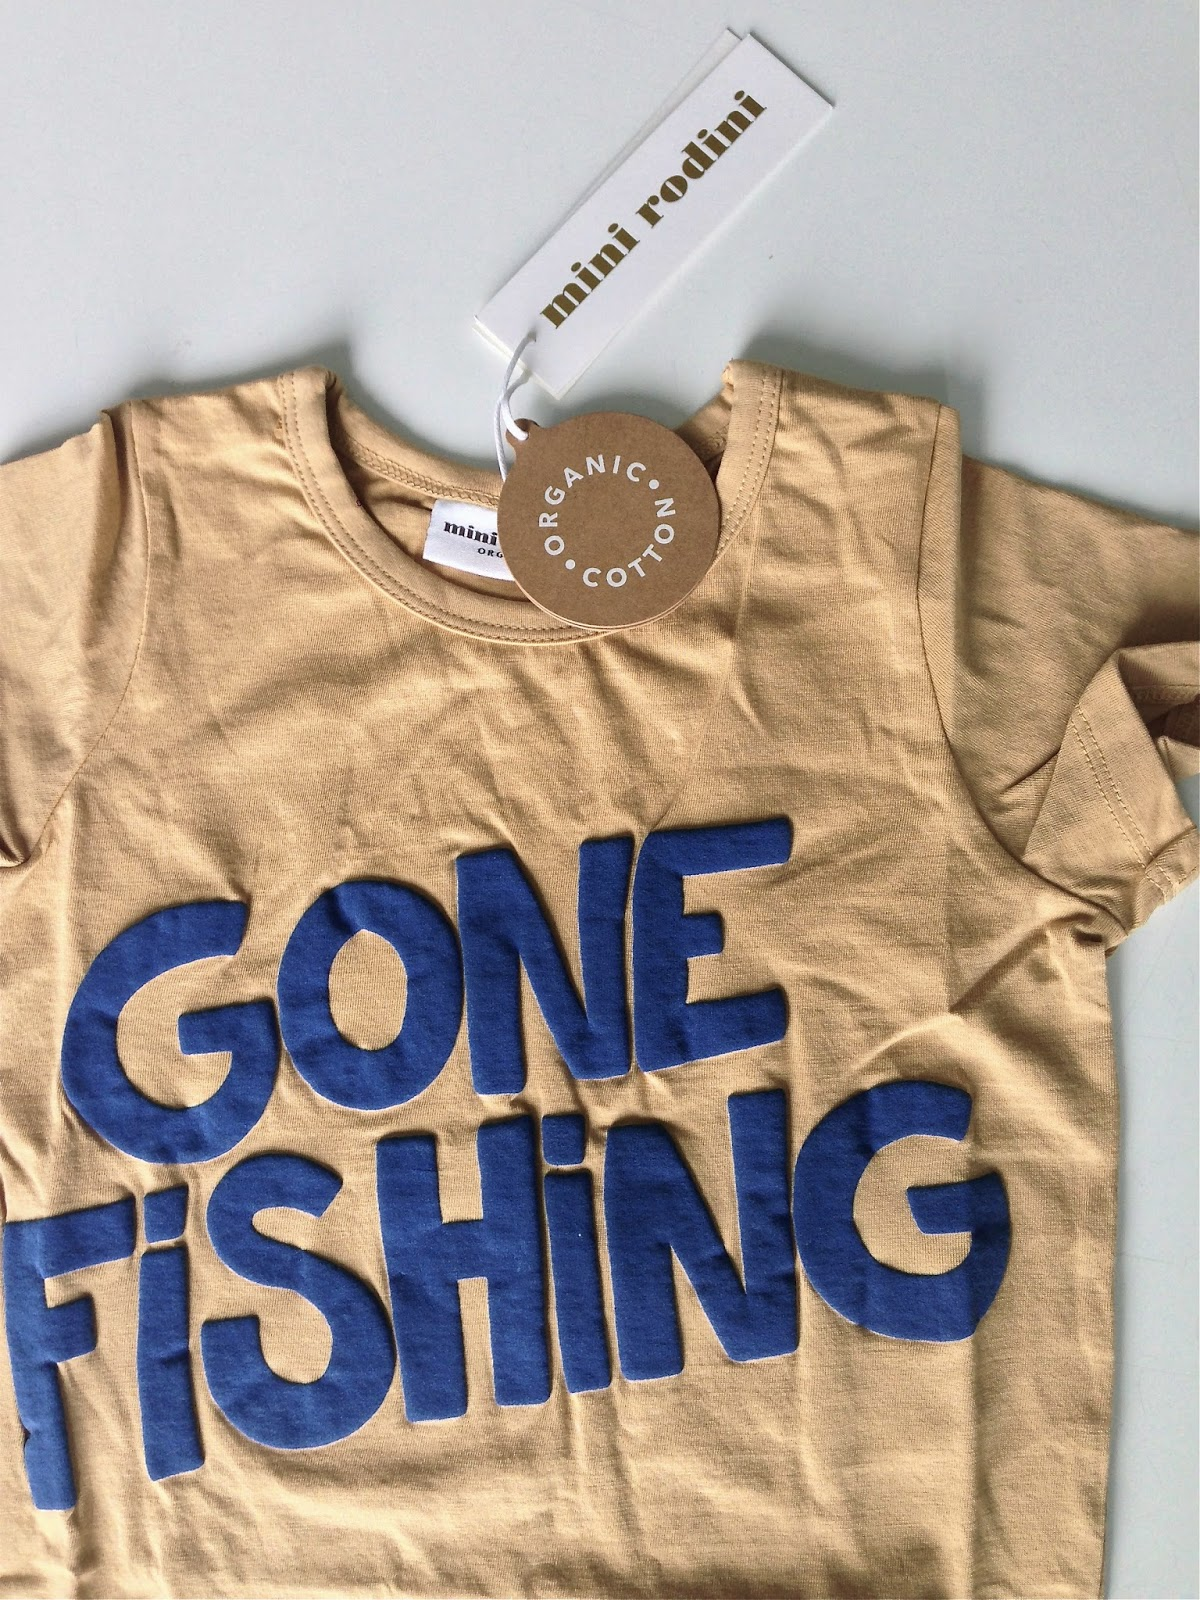 Mini Rodini ss15, gone fishing tee